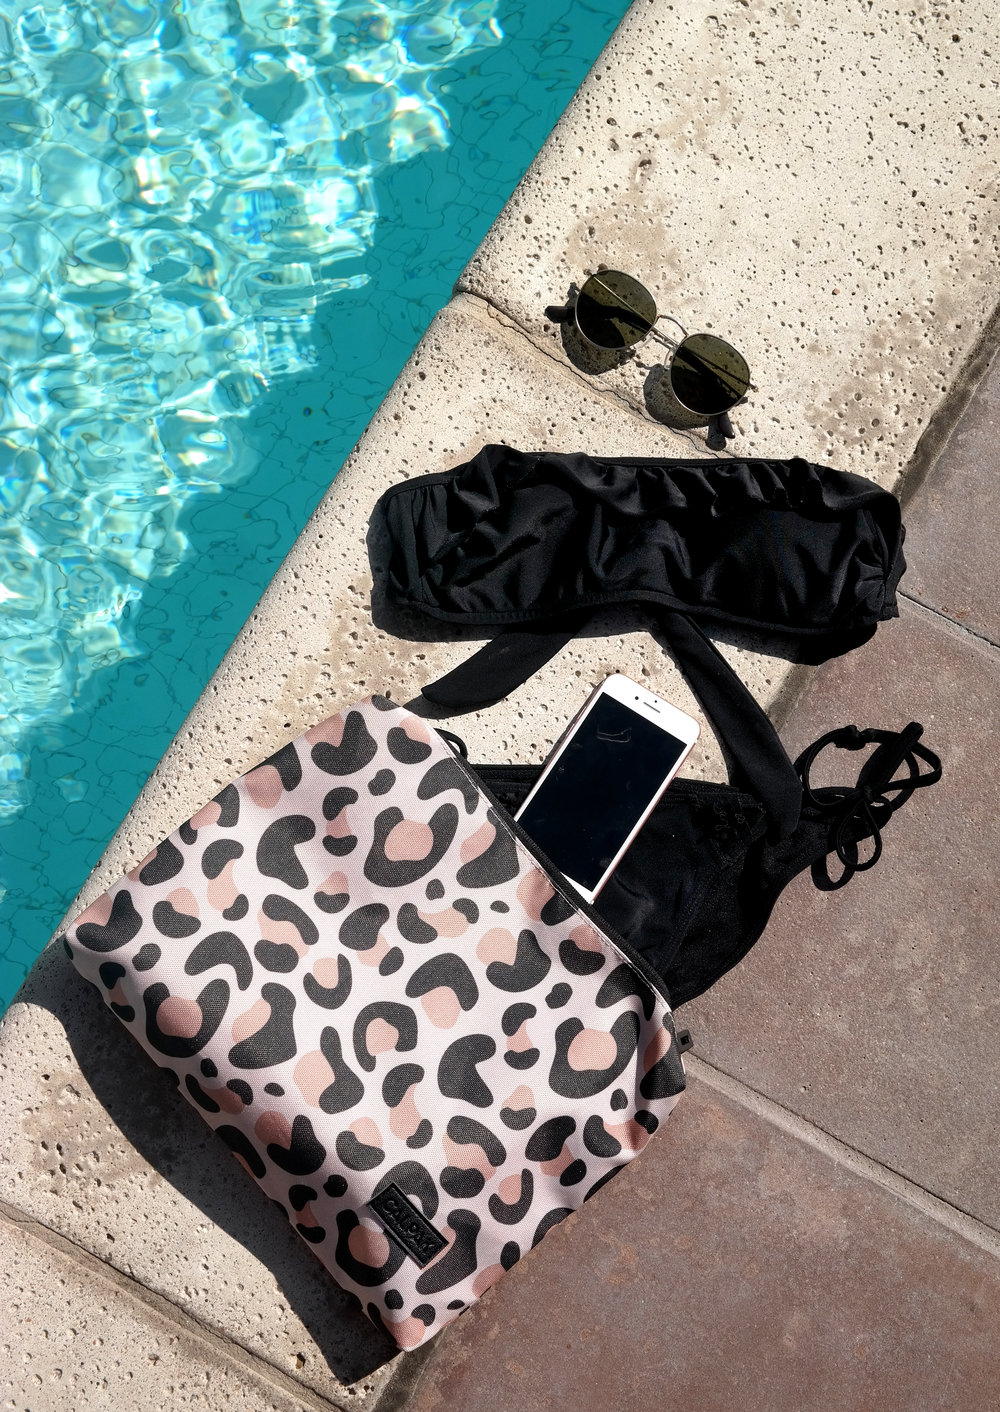 CALPAK's leopard print pouch from packing cubes is waterproof; photographed with swimwear and essentials next to a pool.